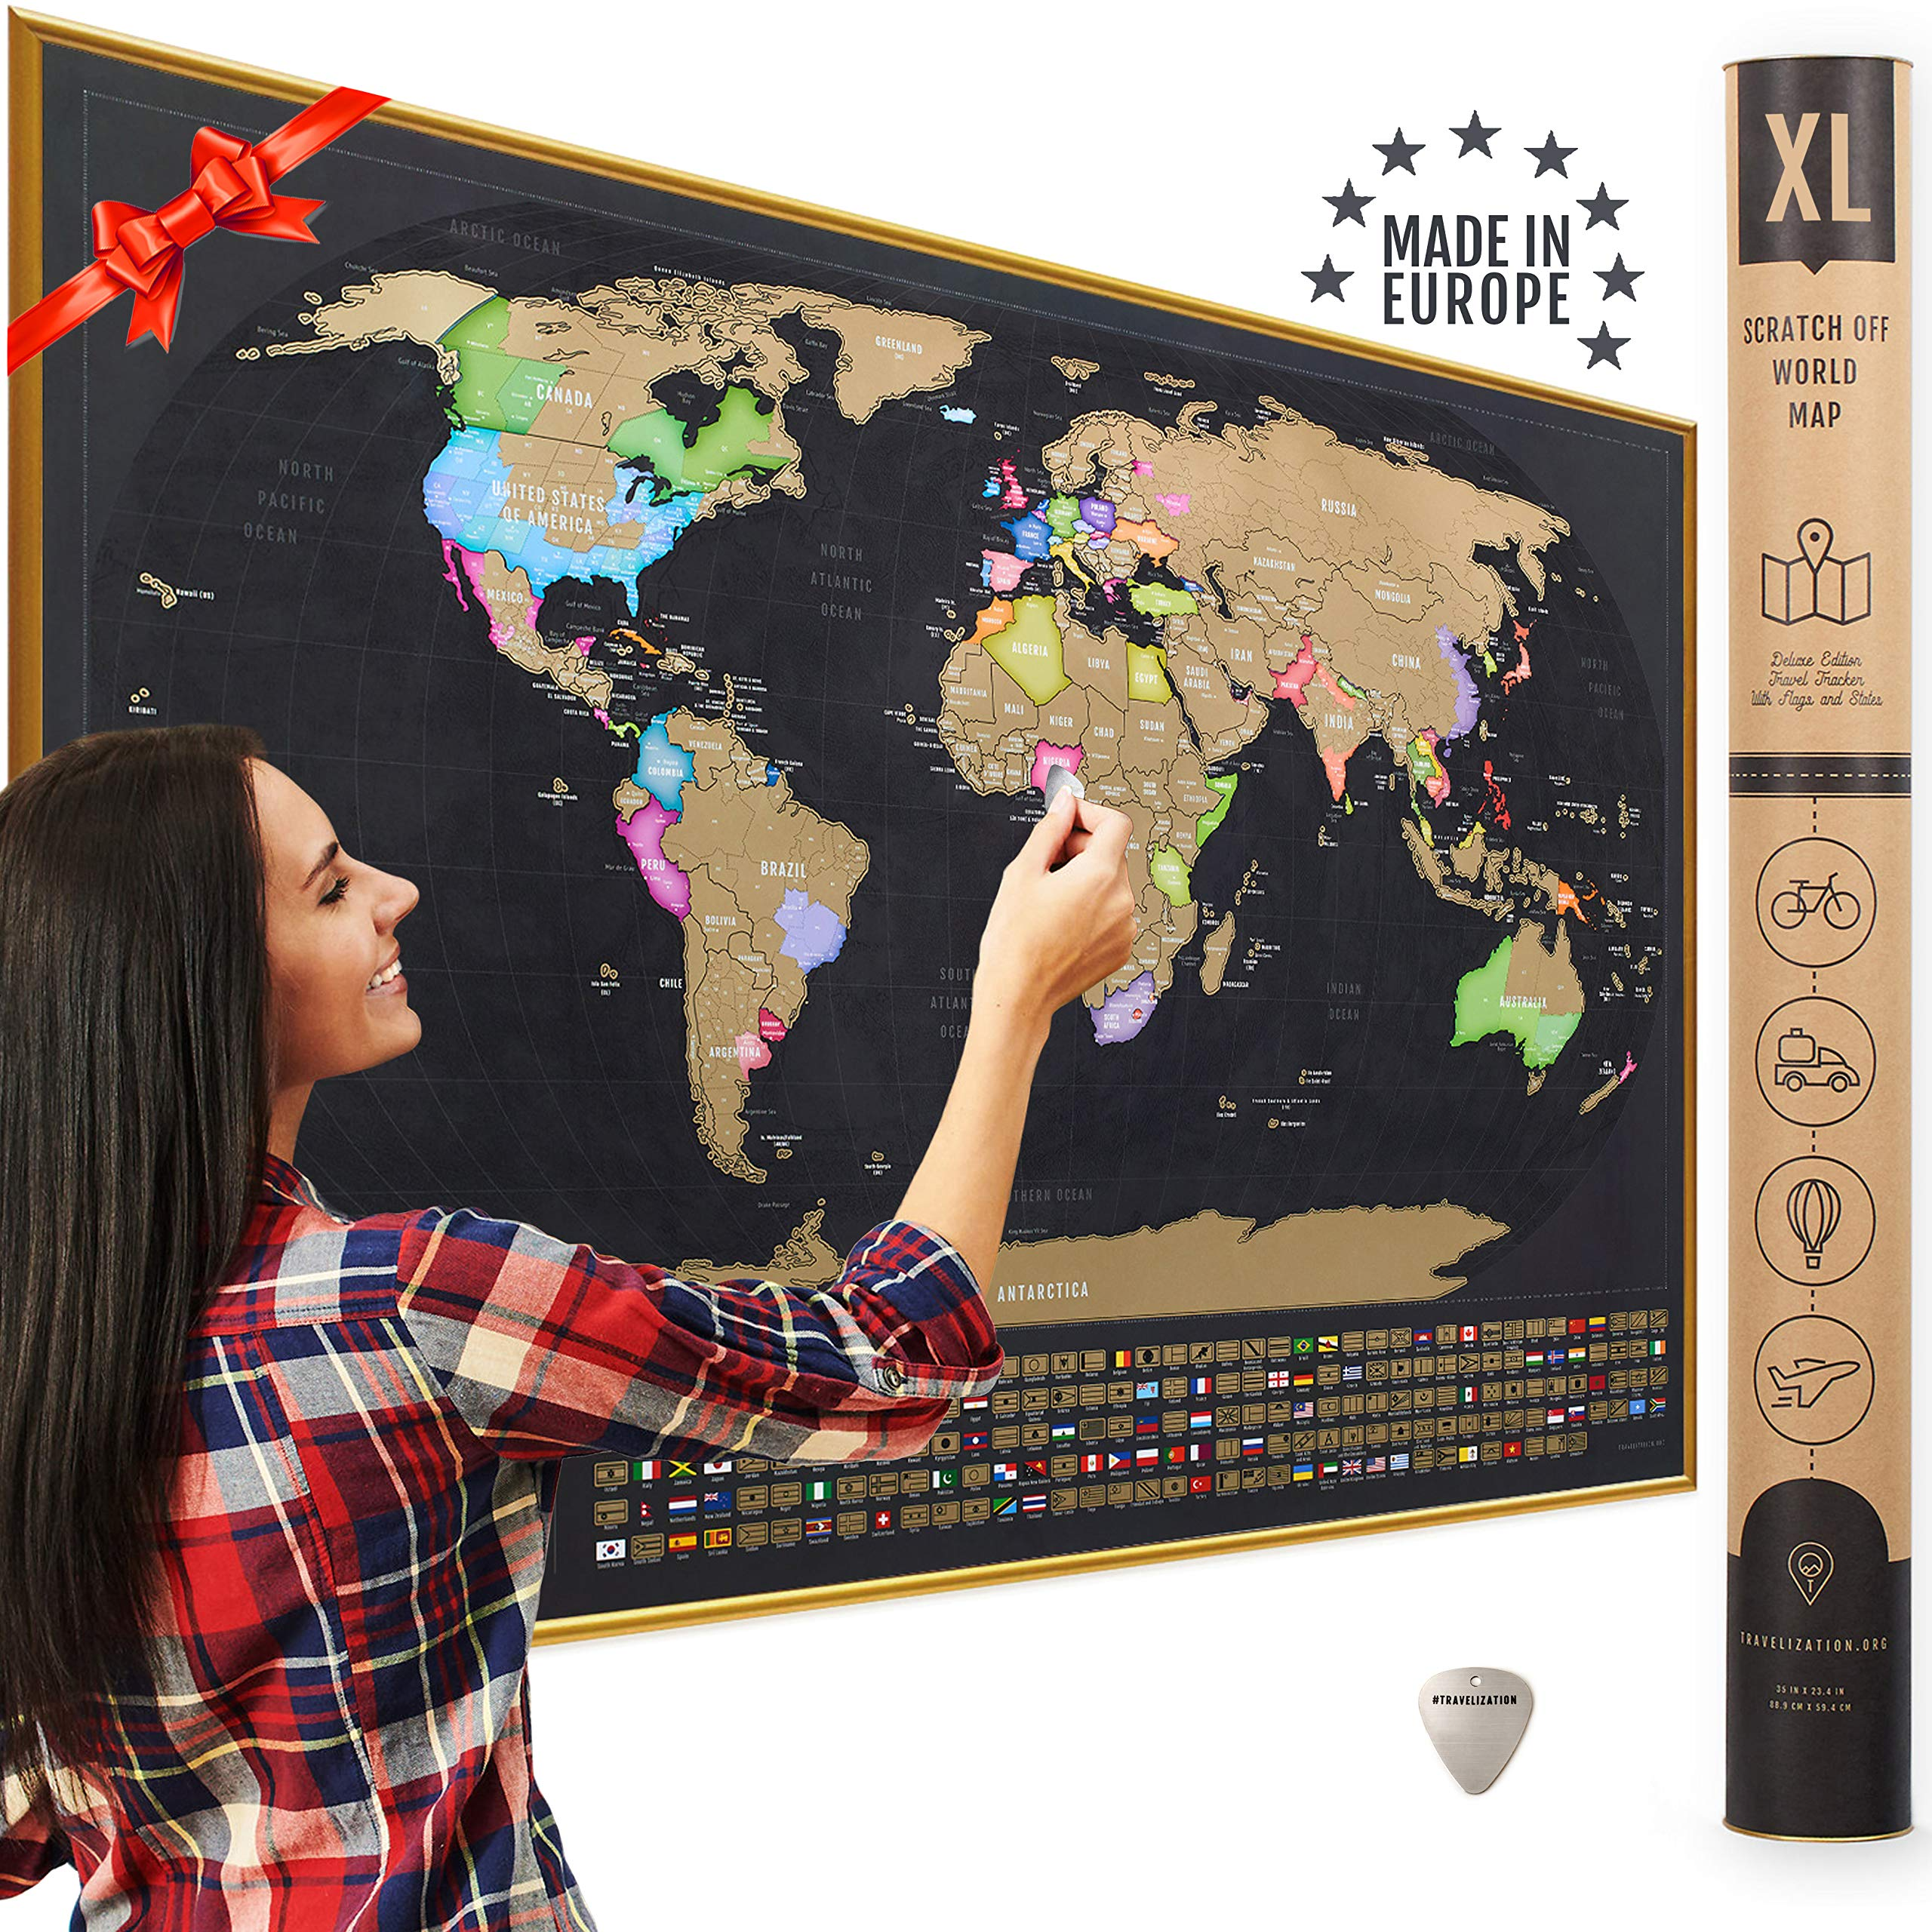 XL Scratch Off Map of the World with Flags - Made in Europe Large 35x23-1/2 inch Scratch Off World Map Poster with US States & Country Flags - Deluxe Travel Decor World Scratch Map, Gift for Travelers by Travelization